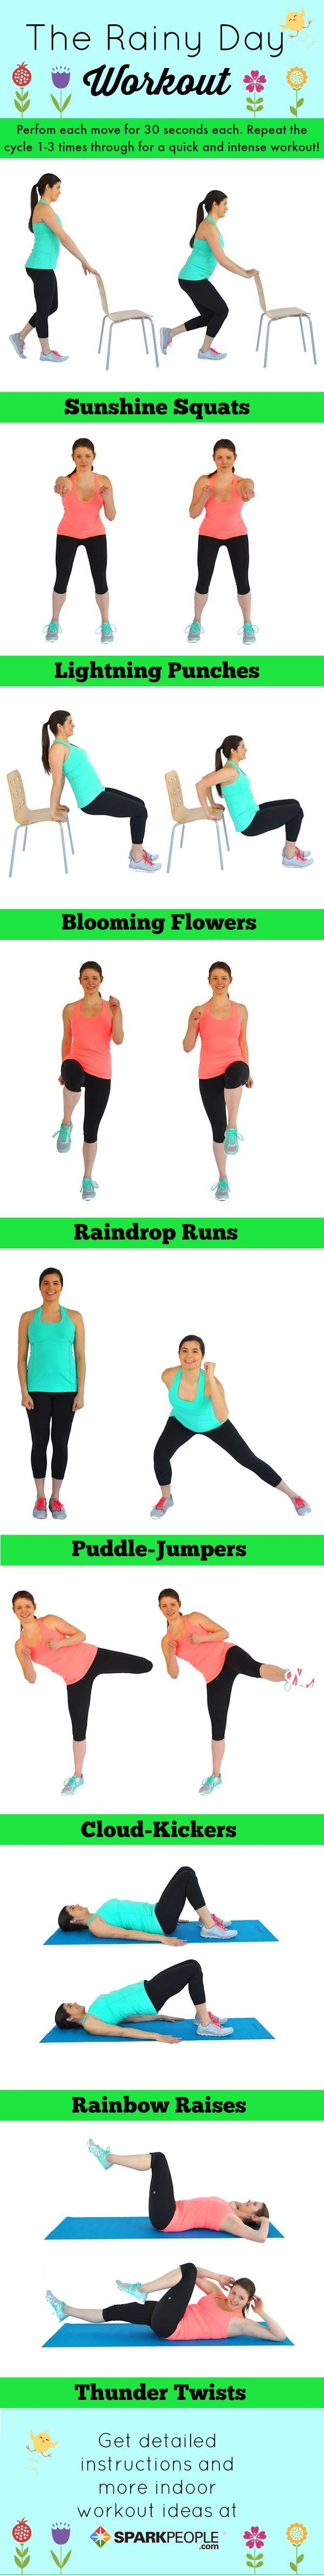 The Rainy Day Workout. Super cute and fun, too! | via @SparkPeople #workout #fitness #homeworkout #spring